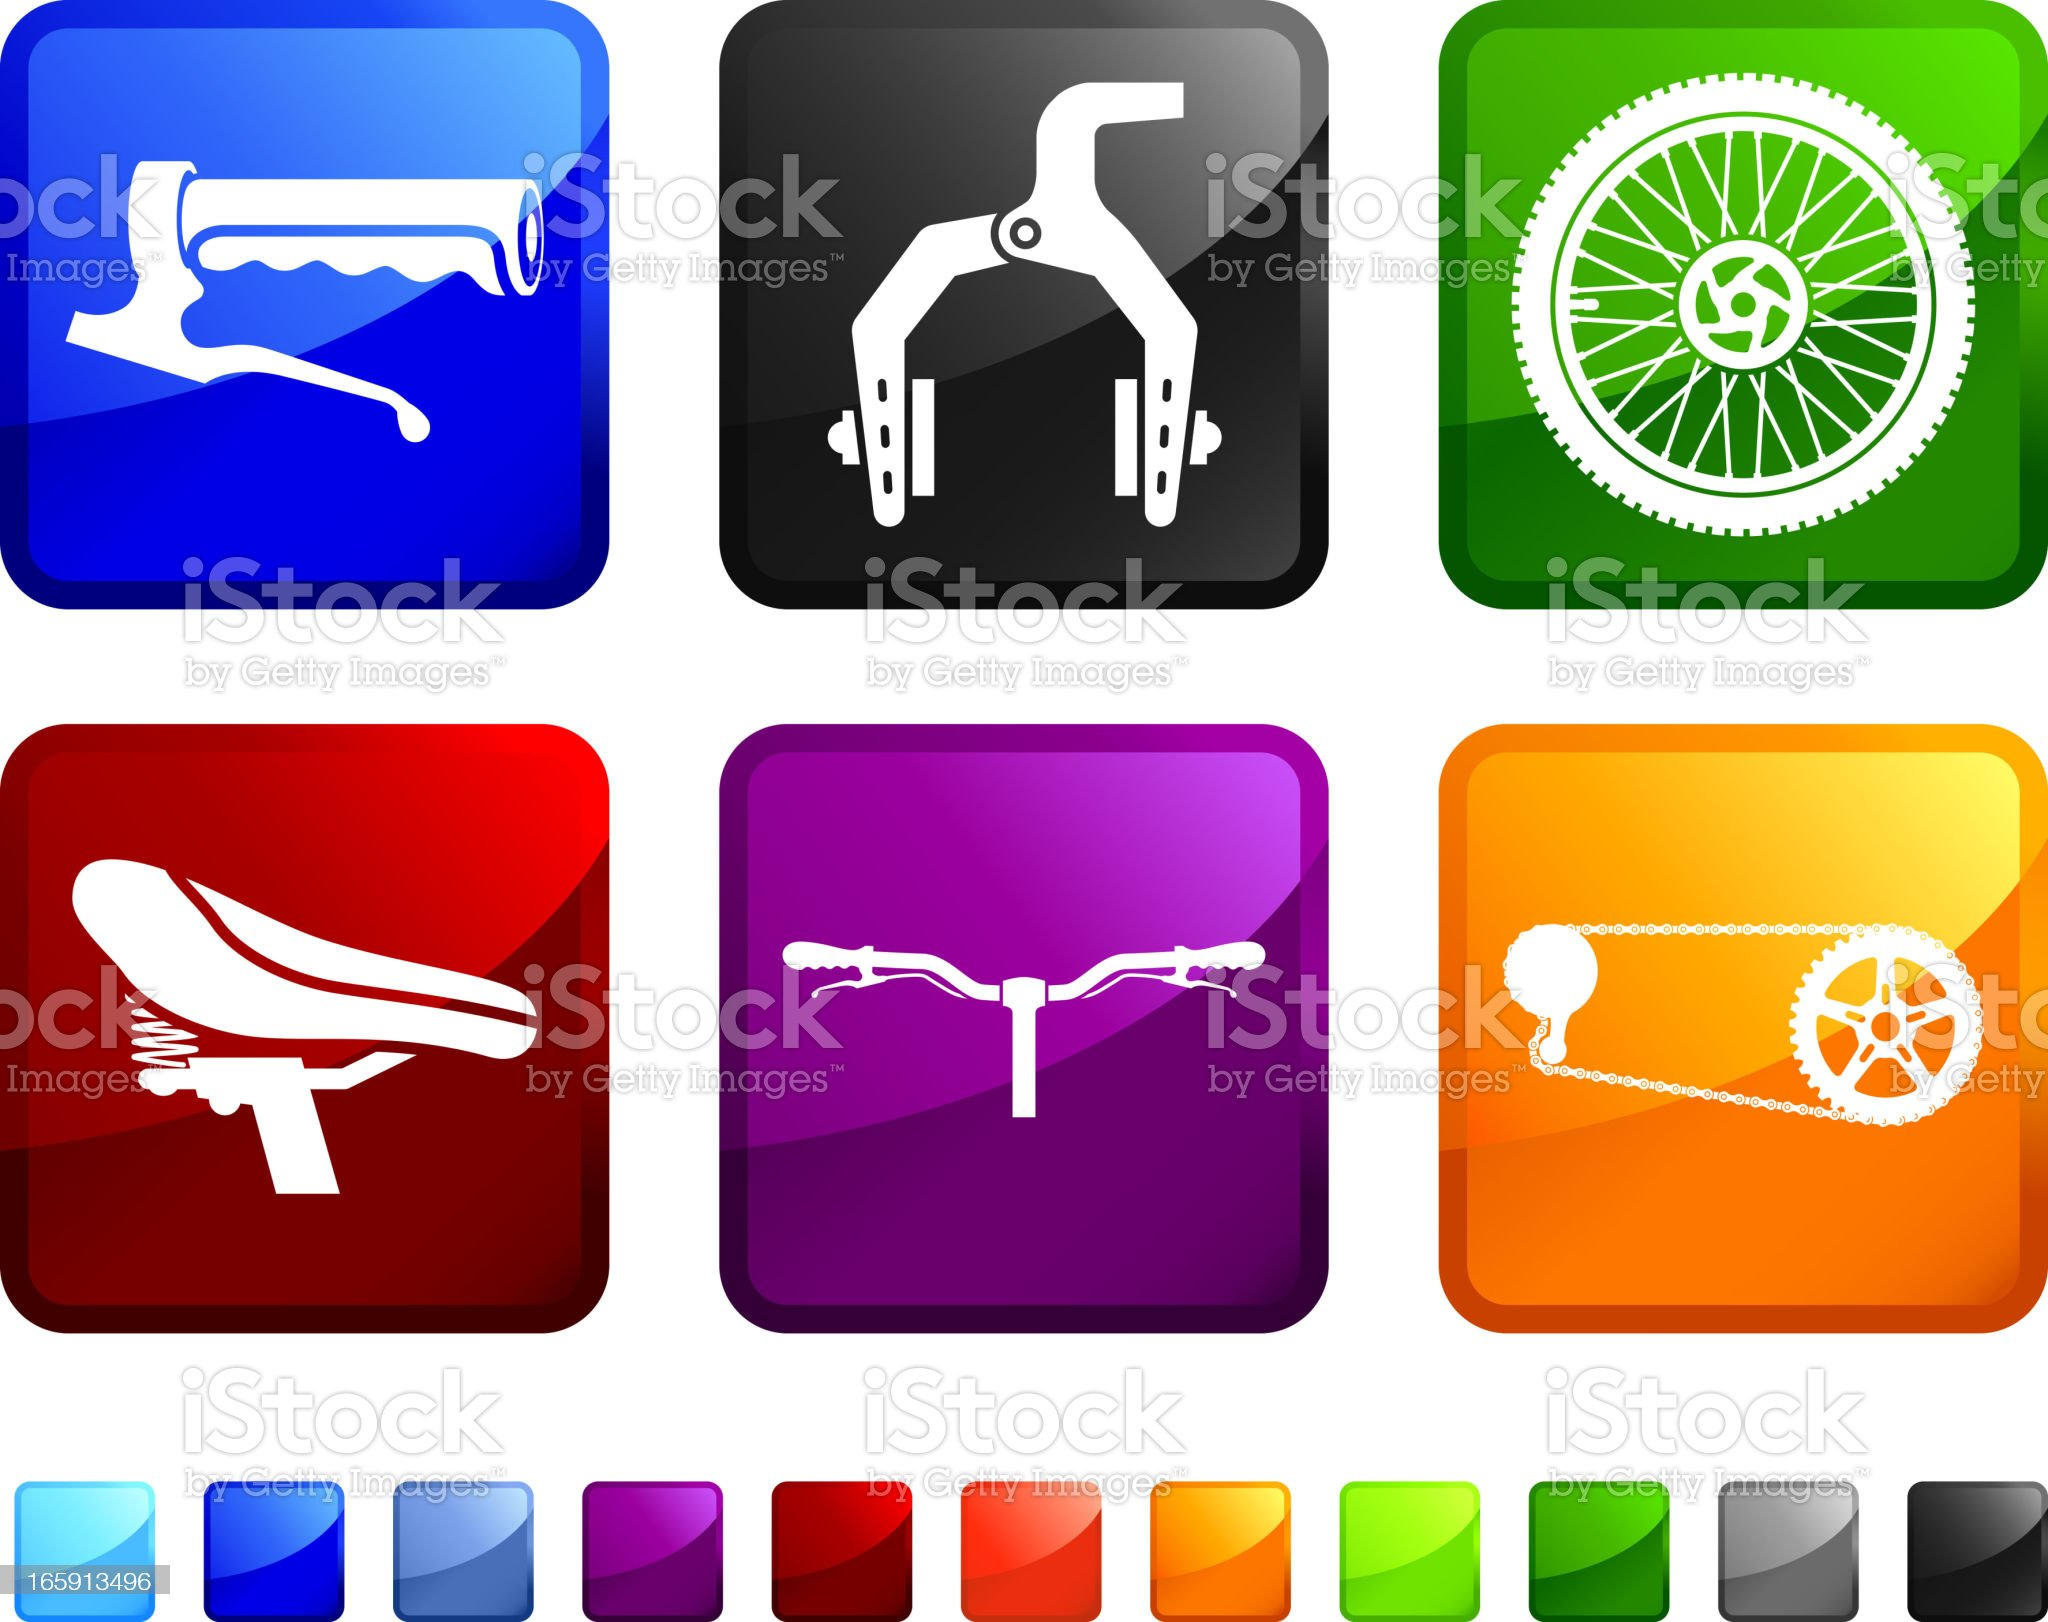 Bicycle Parts royalty free vector icon set stickers royalty-free stock vector art